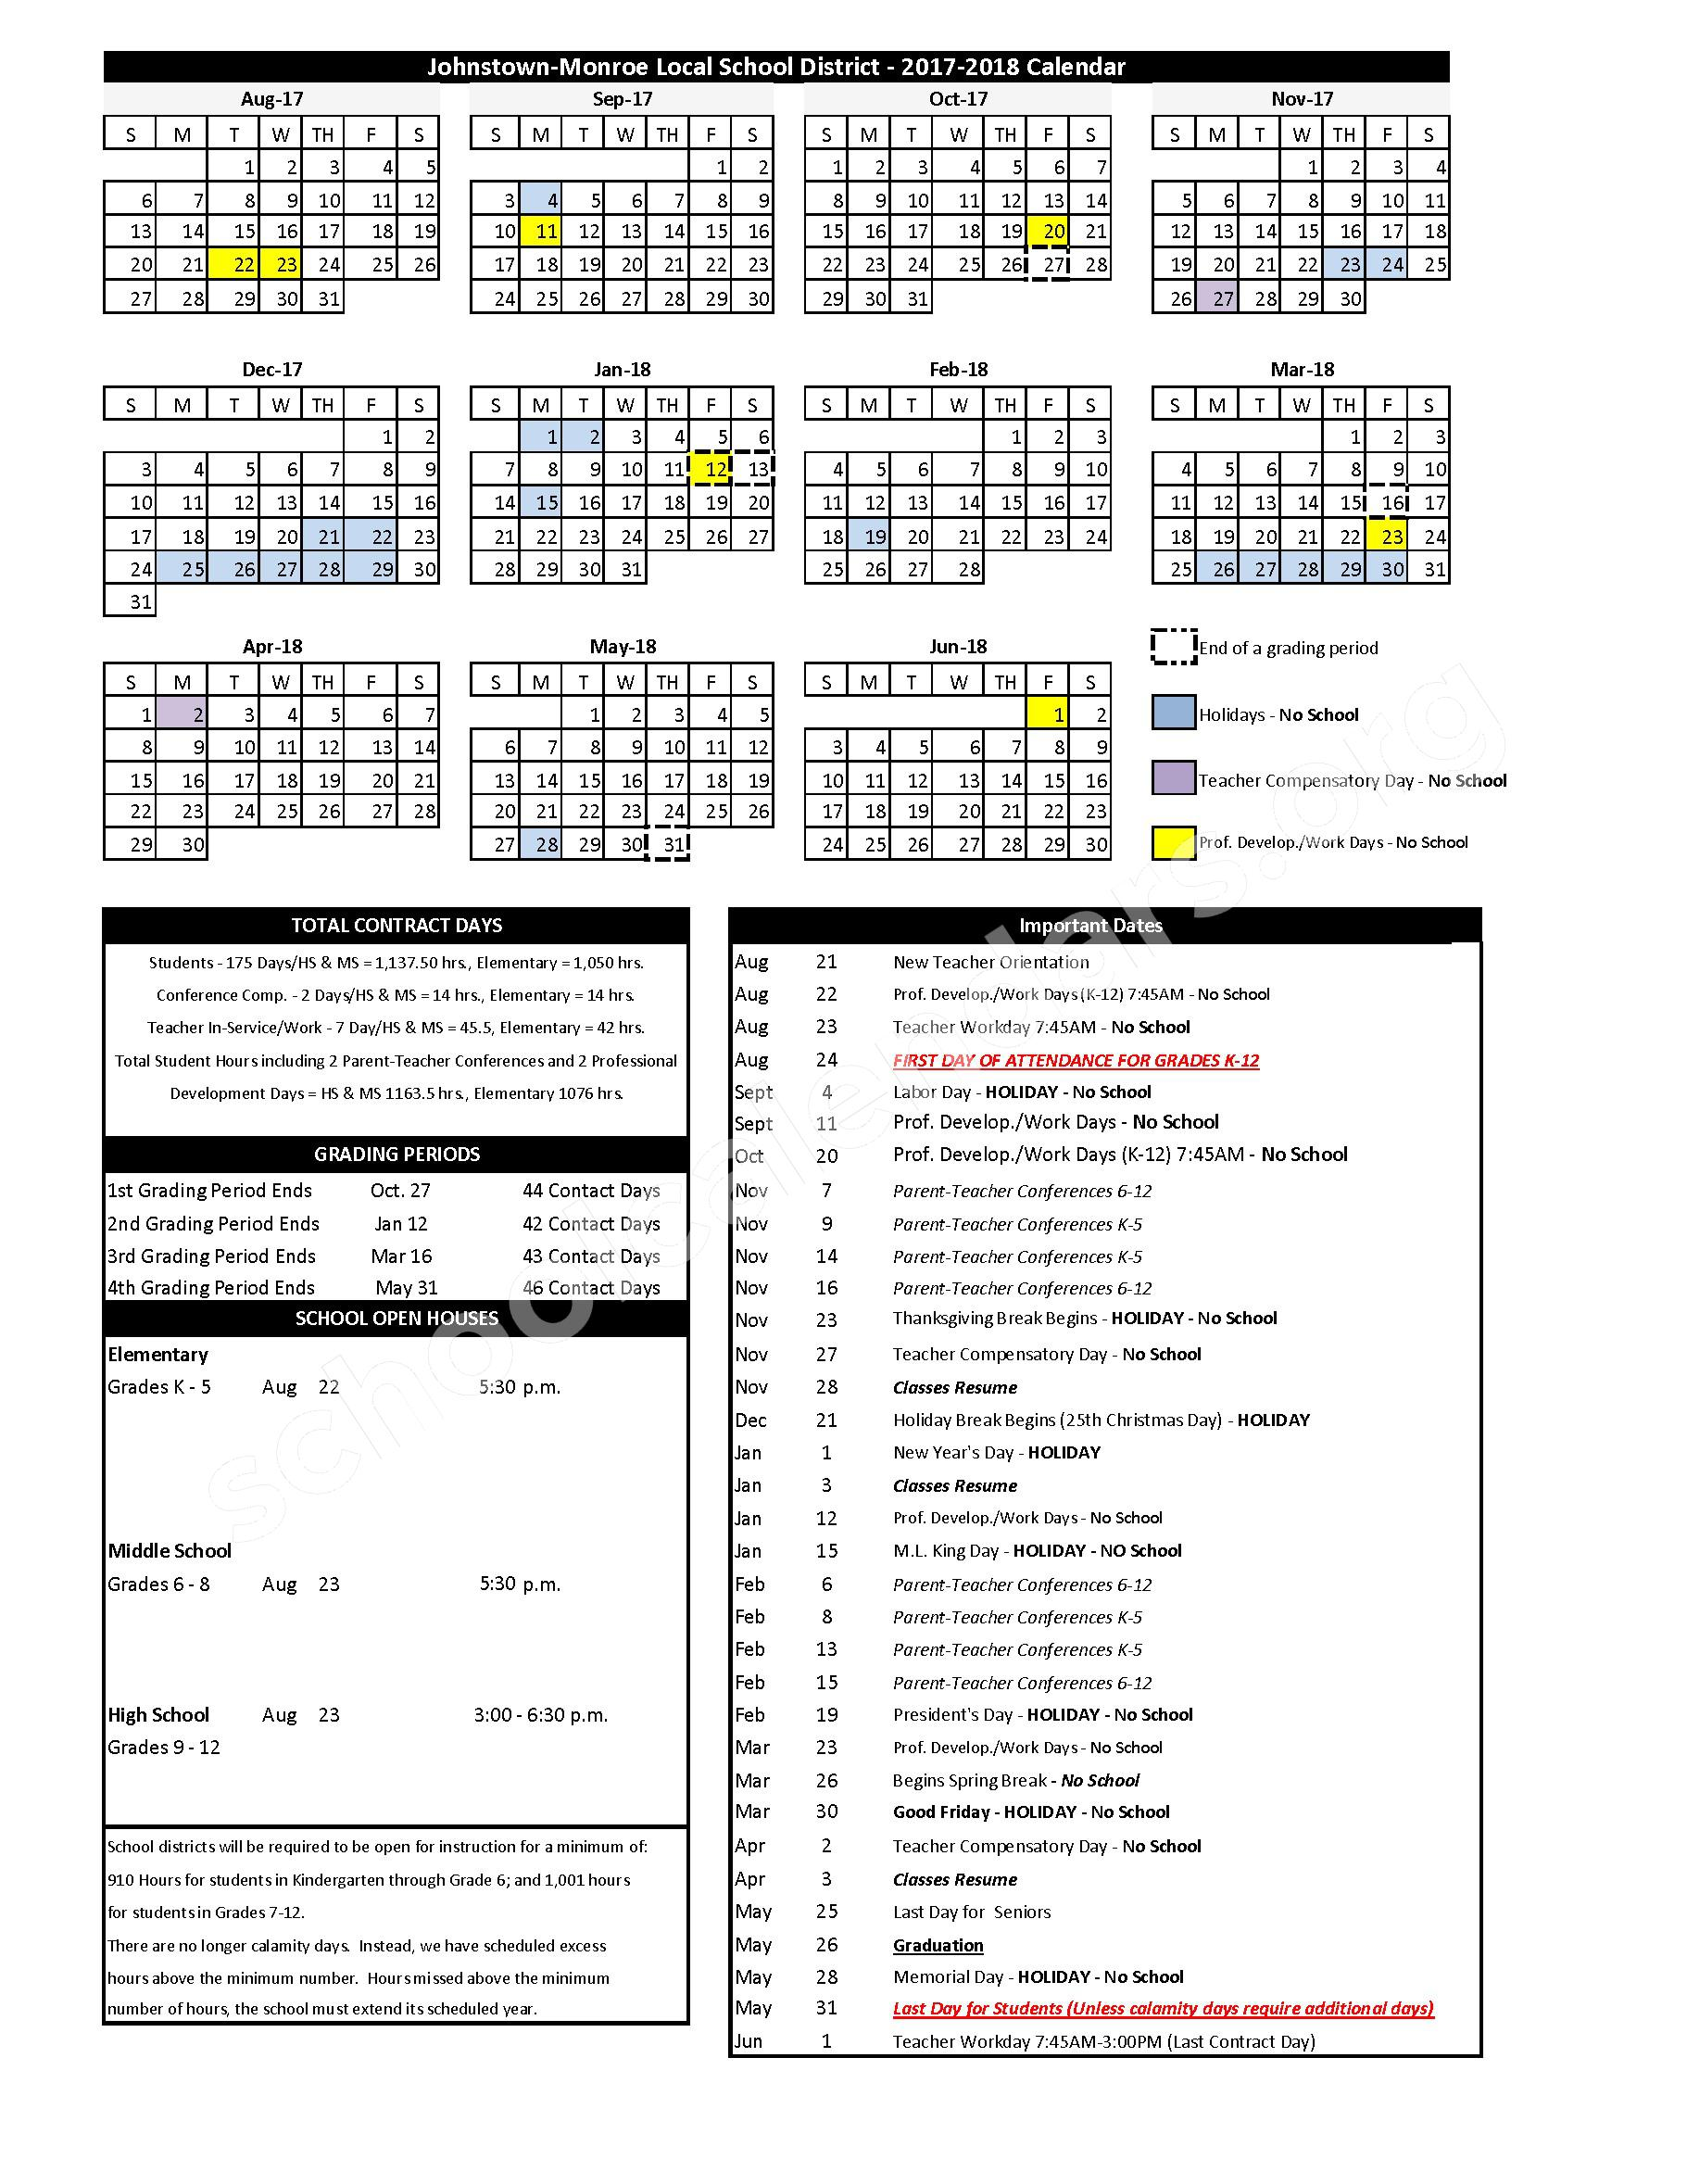 2017 - 2018 School Calendar – Searfoss Elementary School – page 1